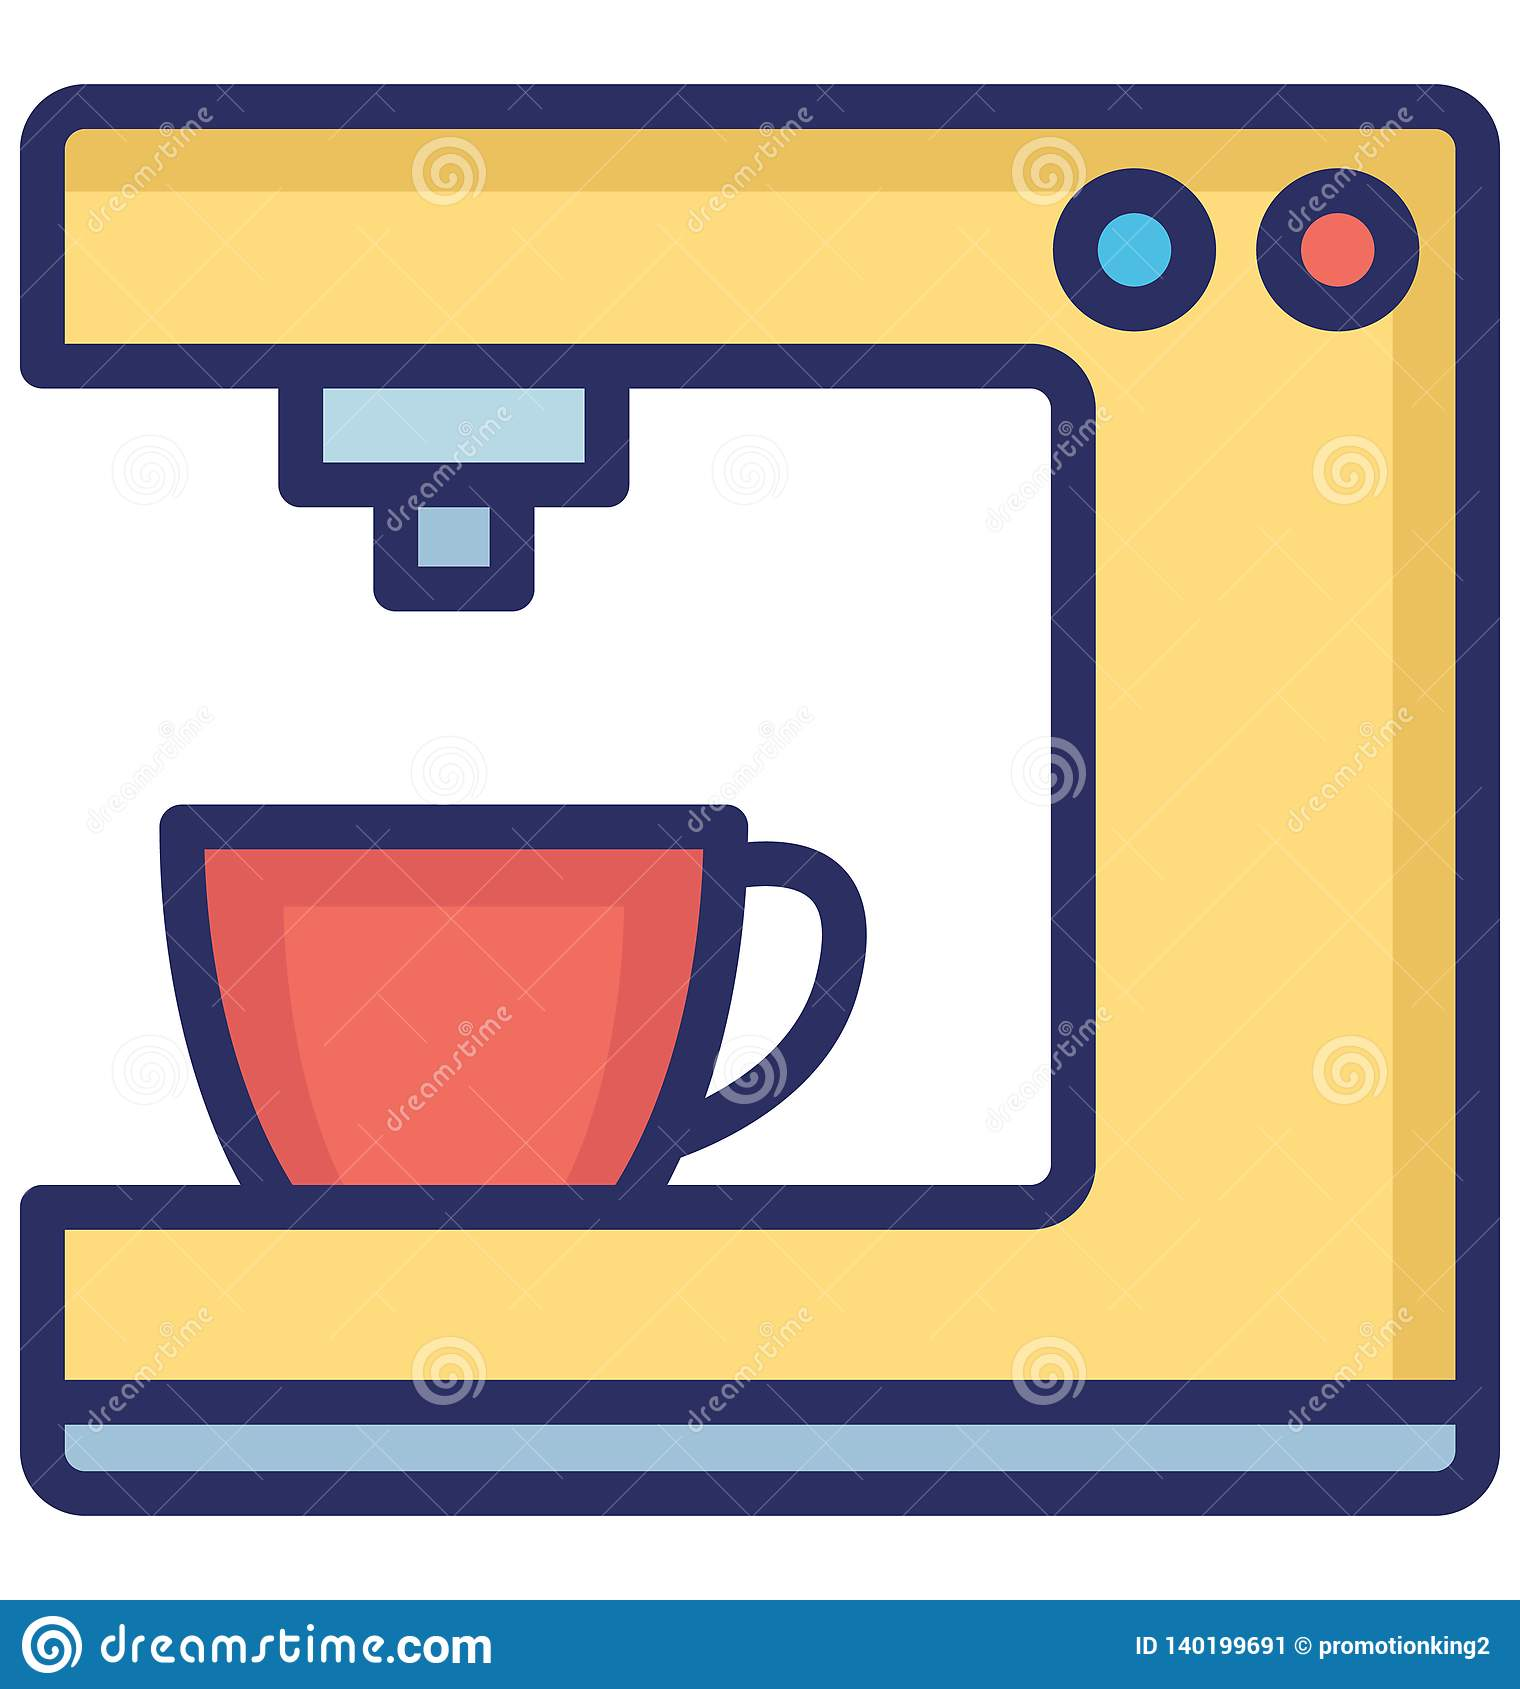 Coffee maker Vector icon which can be easily modified or edit